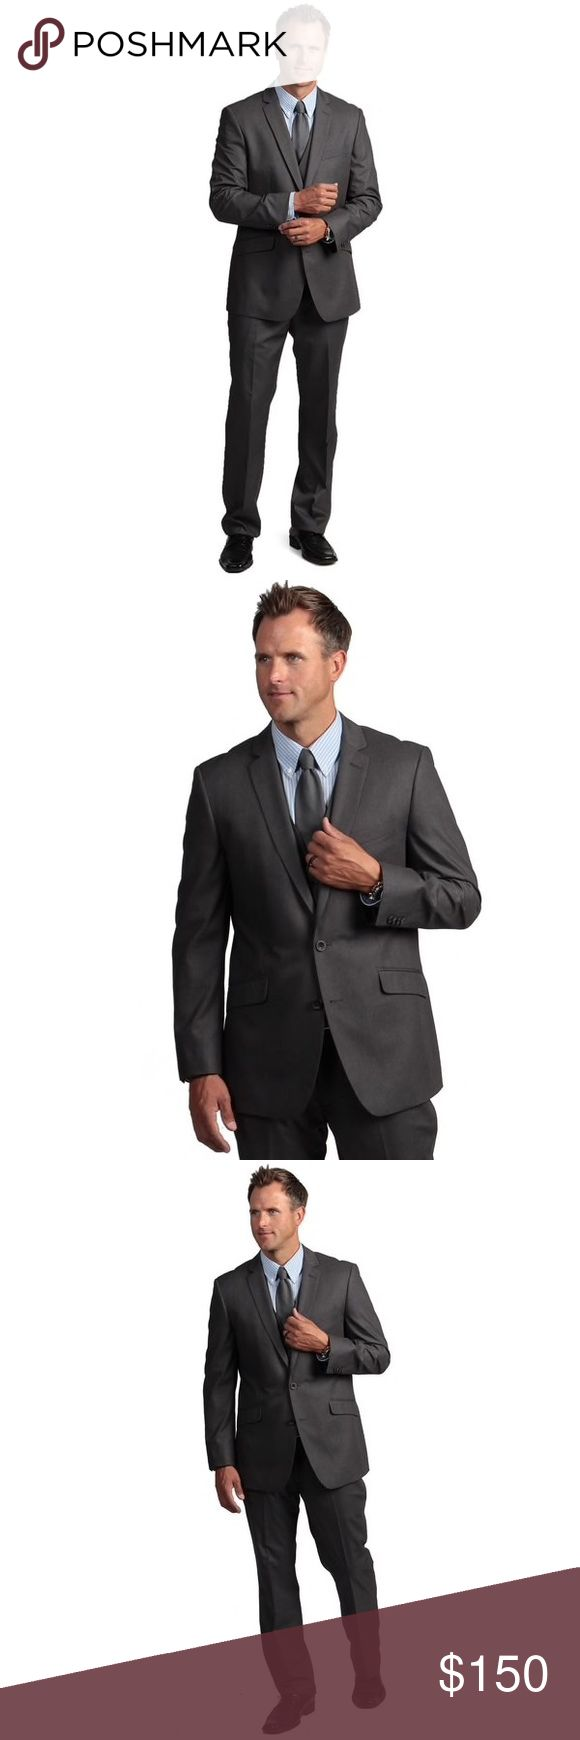 Kenneth Cole Reaction Men's Slim-fit Grey Suit Kenneth Cole Reaction Men's Slim-fit Grey Suit Coat blazer and pants, 2 pieces, worn once only like new, looks new. Excellent condition, husband wore it for a few hours to an interview. The jacket is size 38S and the pants are size 32width and 30 length but they fit like a 33-34 width. Jacket true to size Kenneth Cole Reaction Suits & Blazers Suits